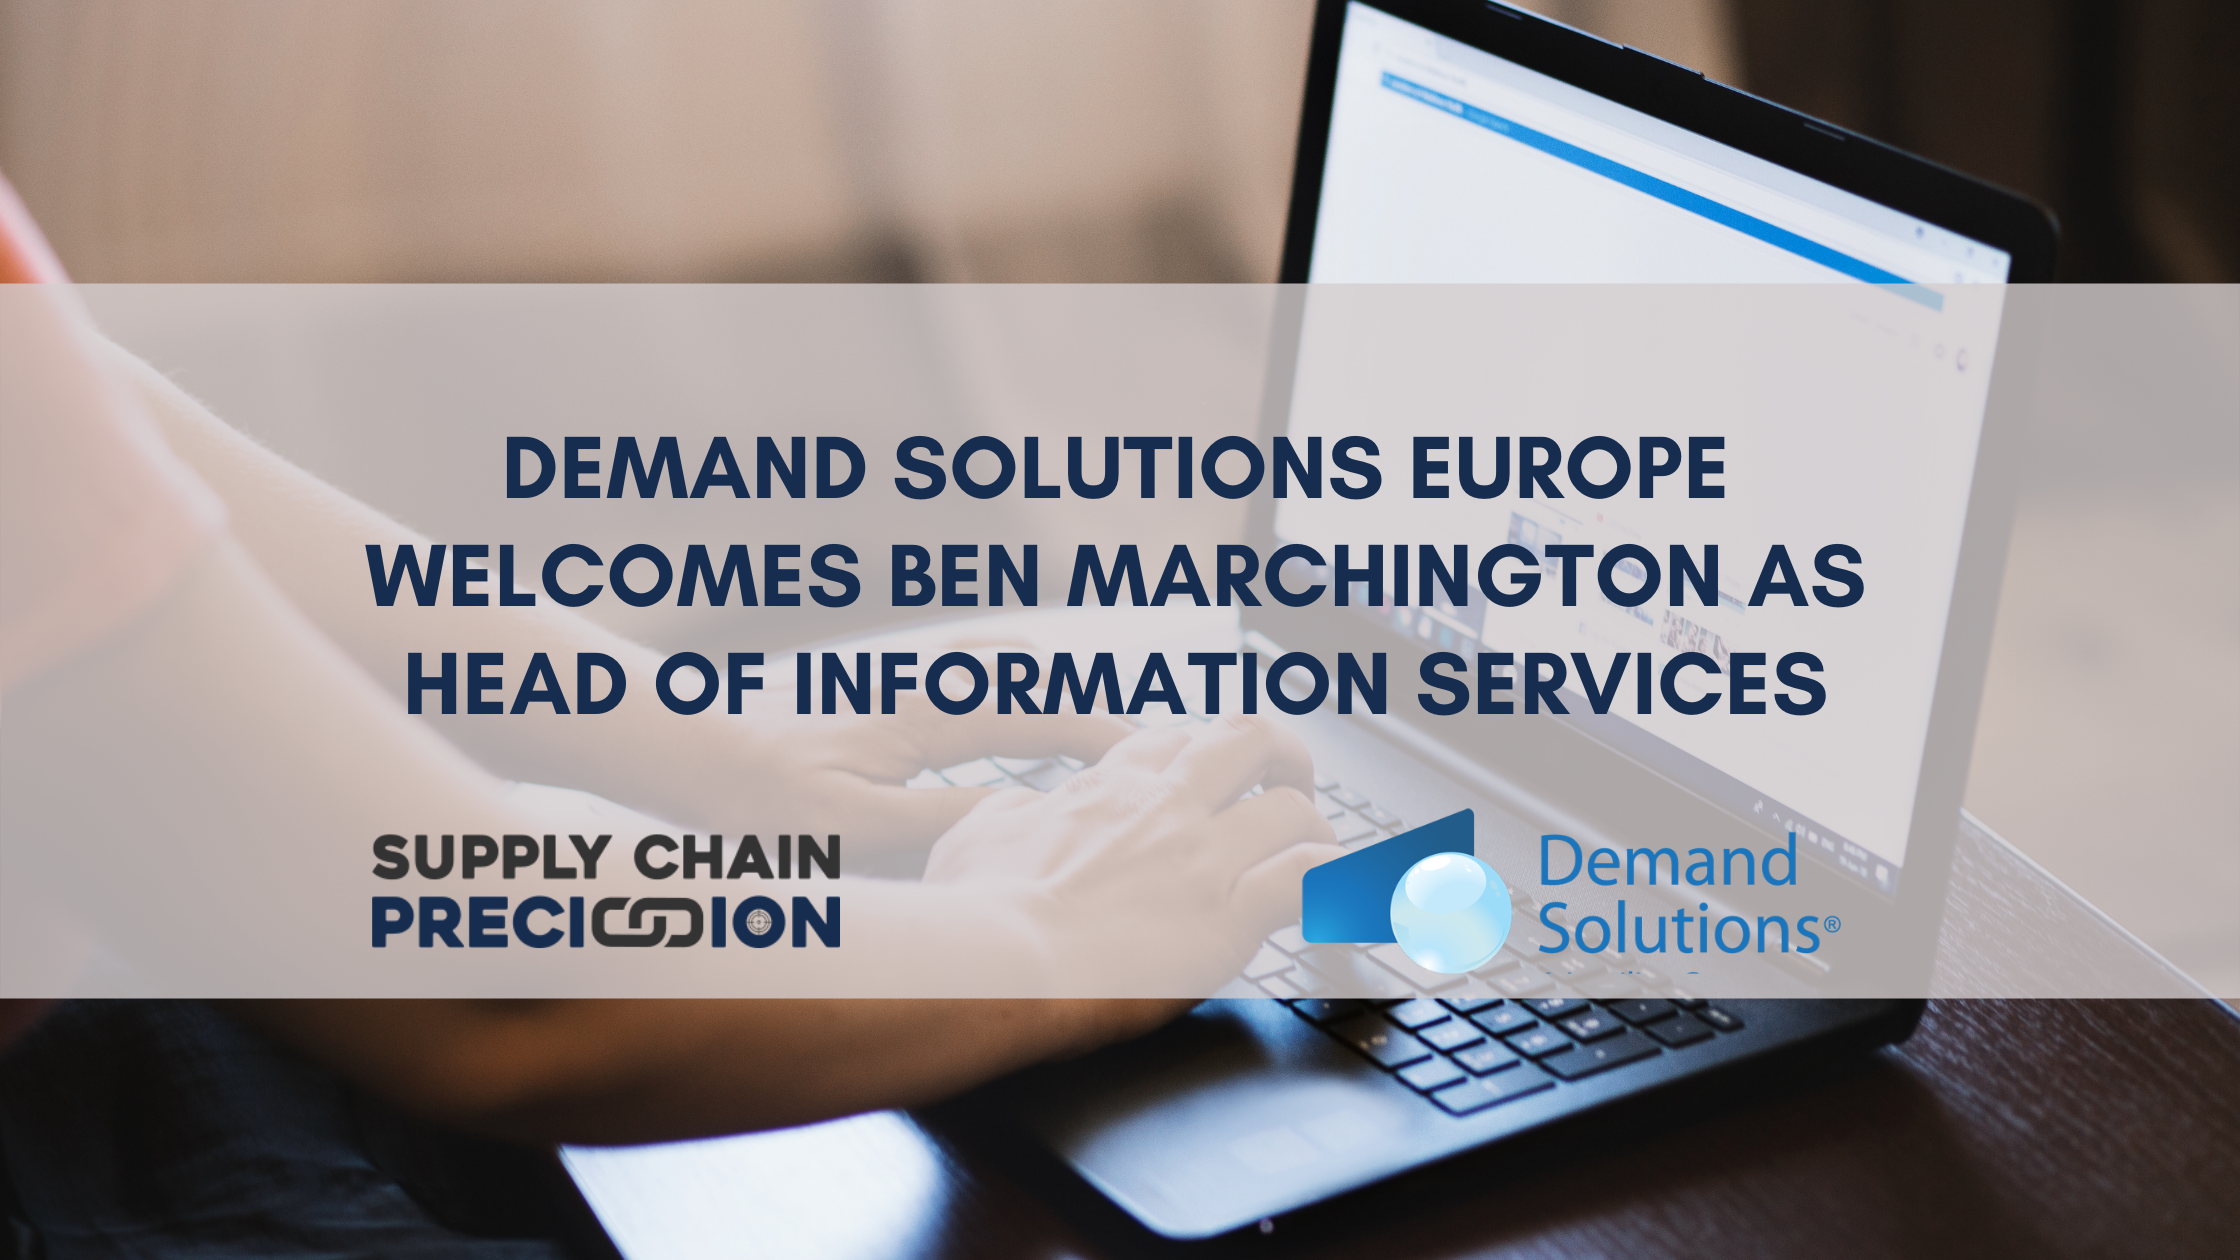 Demand Solutions Europe Welcomes Ben Marchington As Head of Information Services